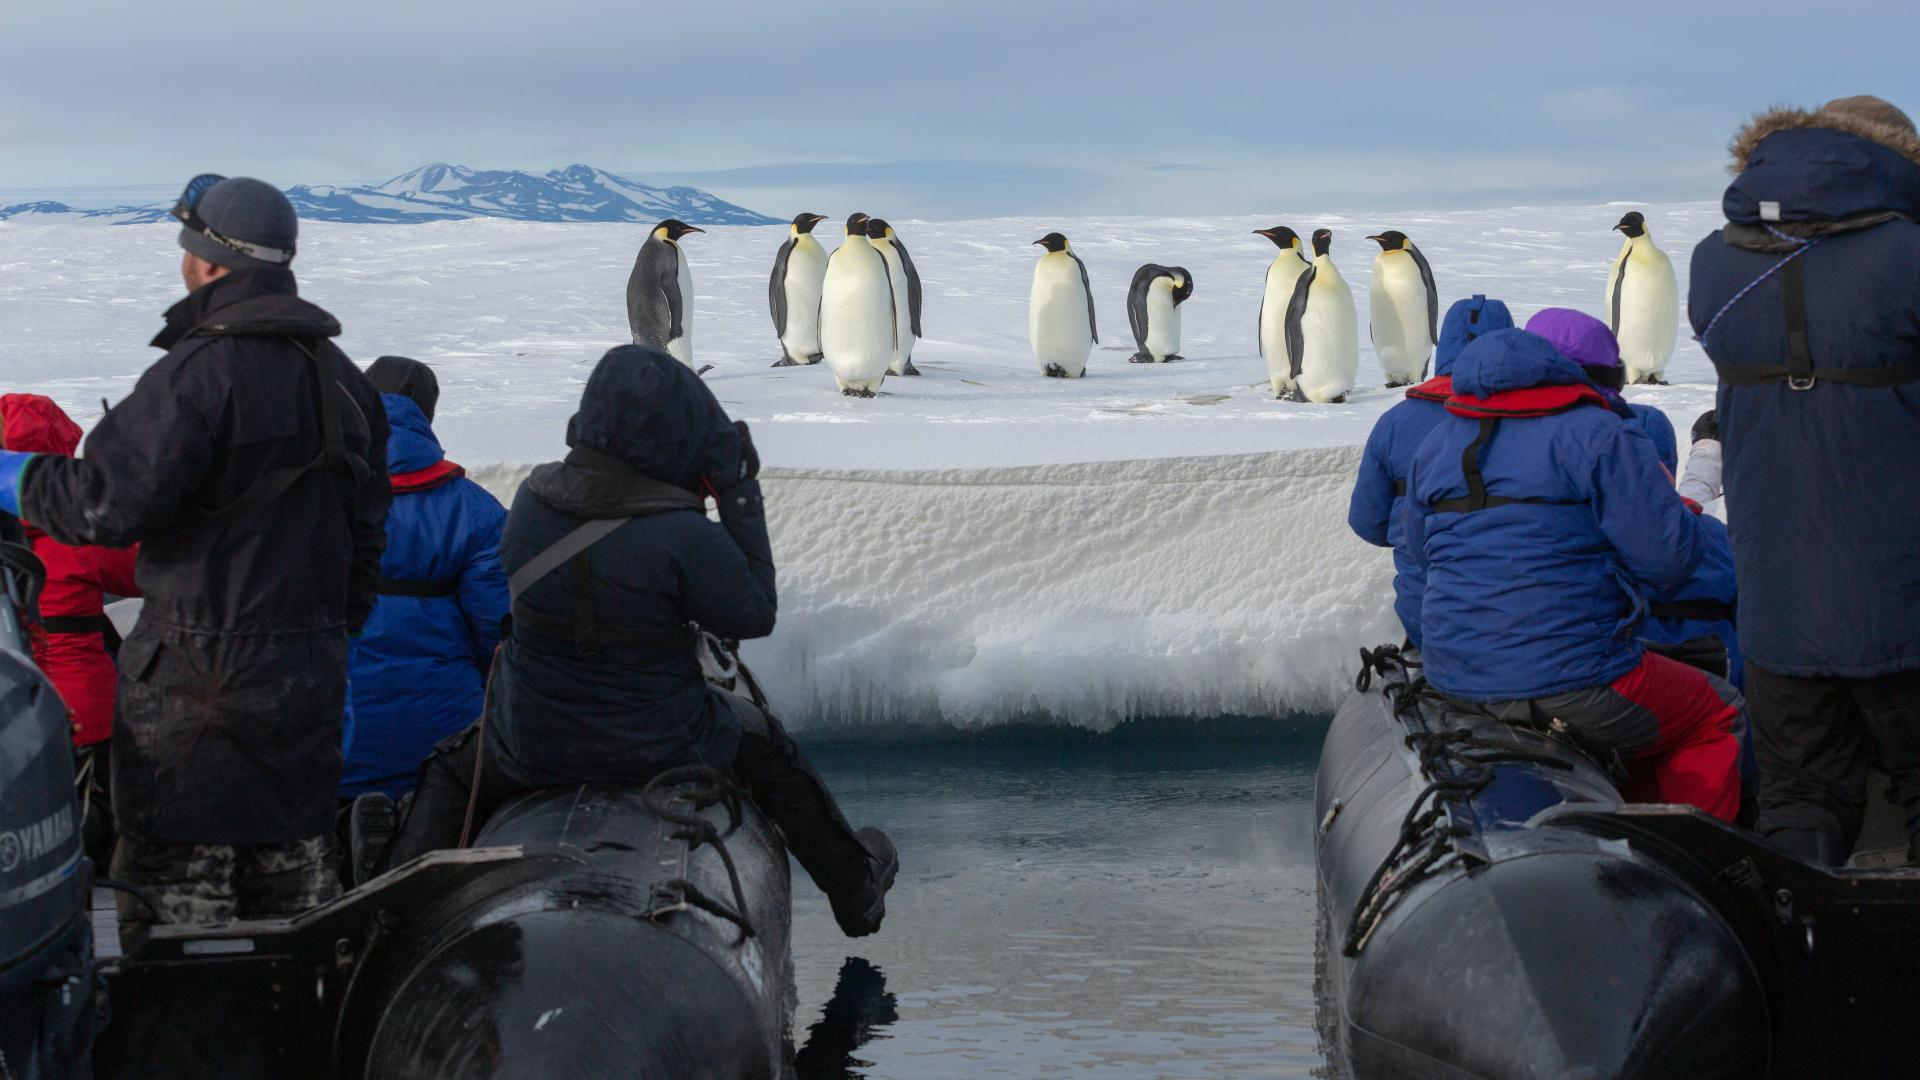 In the Wake of Scott and Shackleton: Ross Sea Antarctica